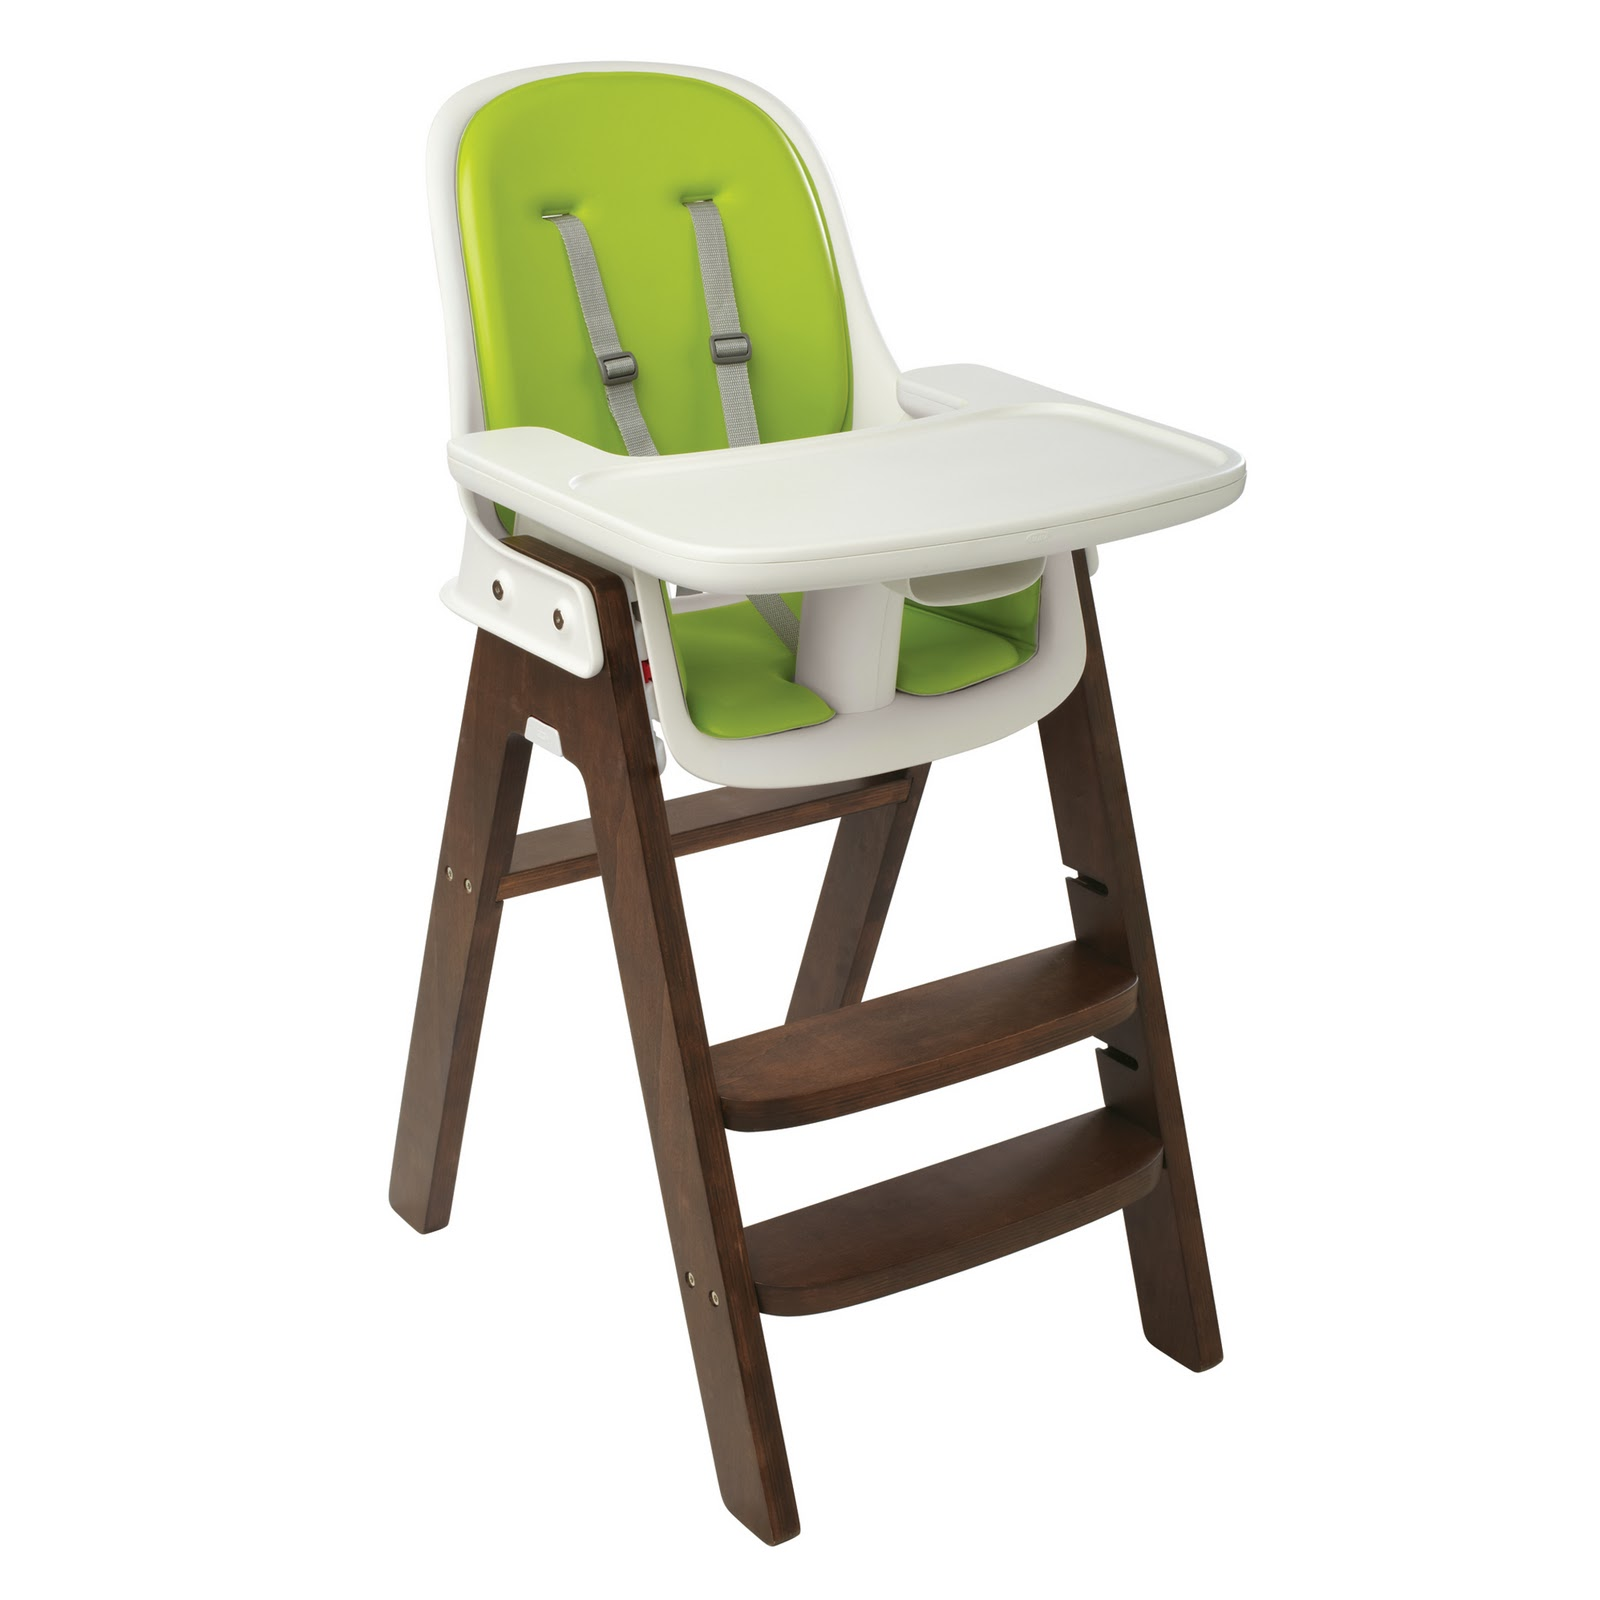 oxo tot sprout chair replacement cushion set taupe miniature electric orange babyonline